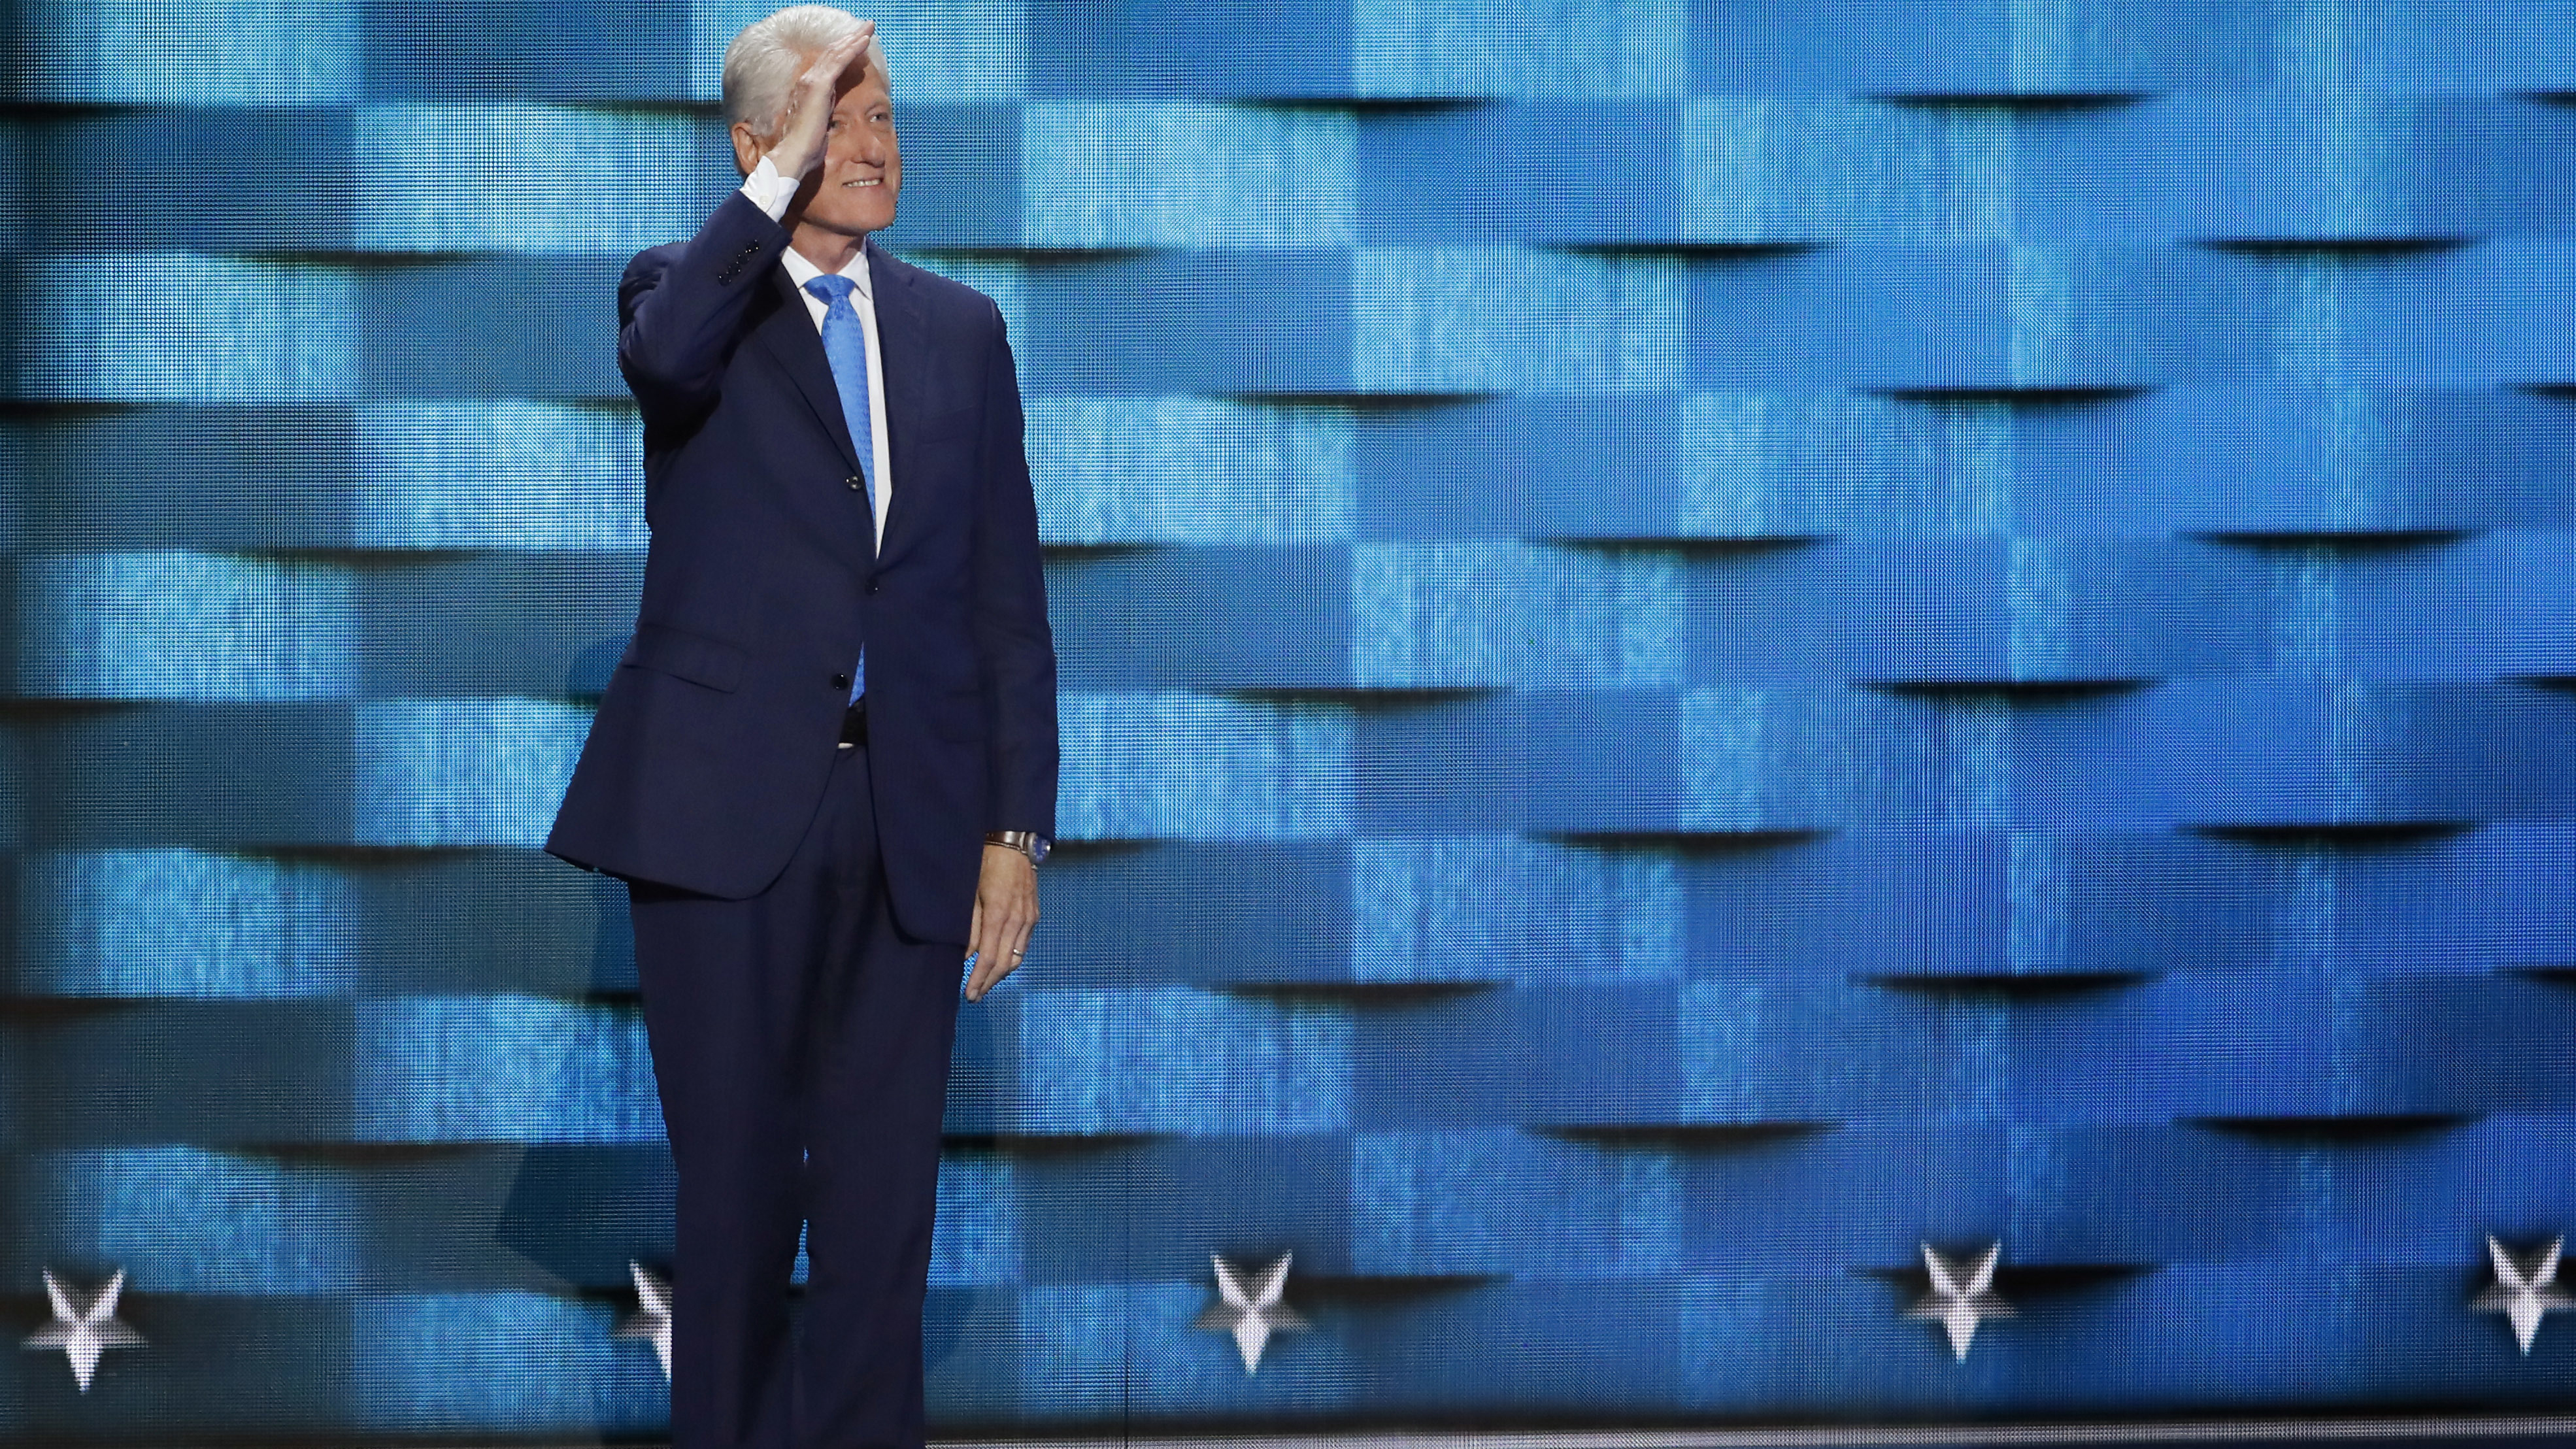 Former President Bill Clinton salutes before speaking during the second day of the Democratic National Convention in Philadelphia , Tuesday, July 26, 2016. (AP Photo/J. Scott Applewhite)